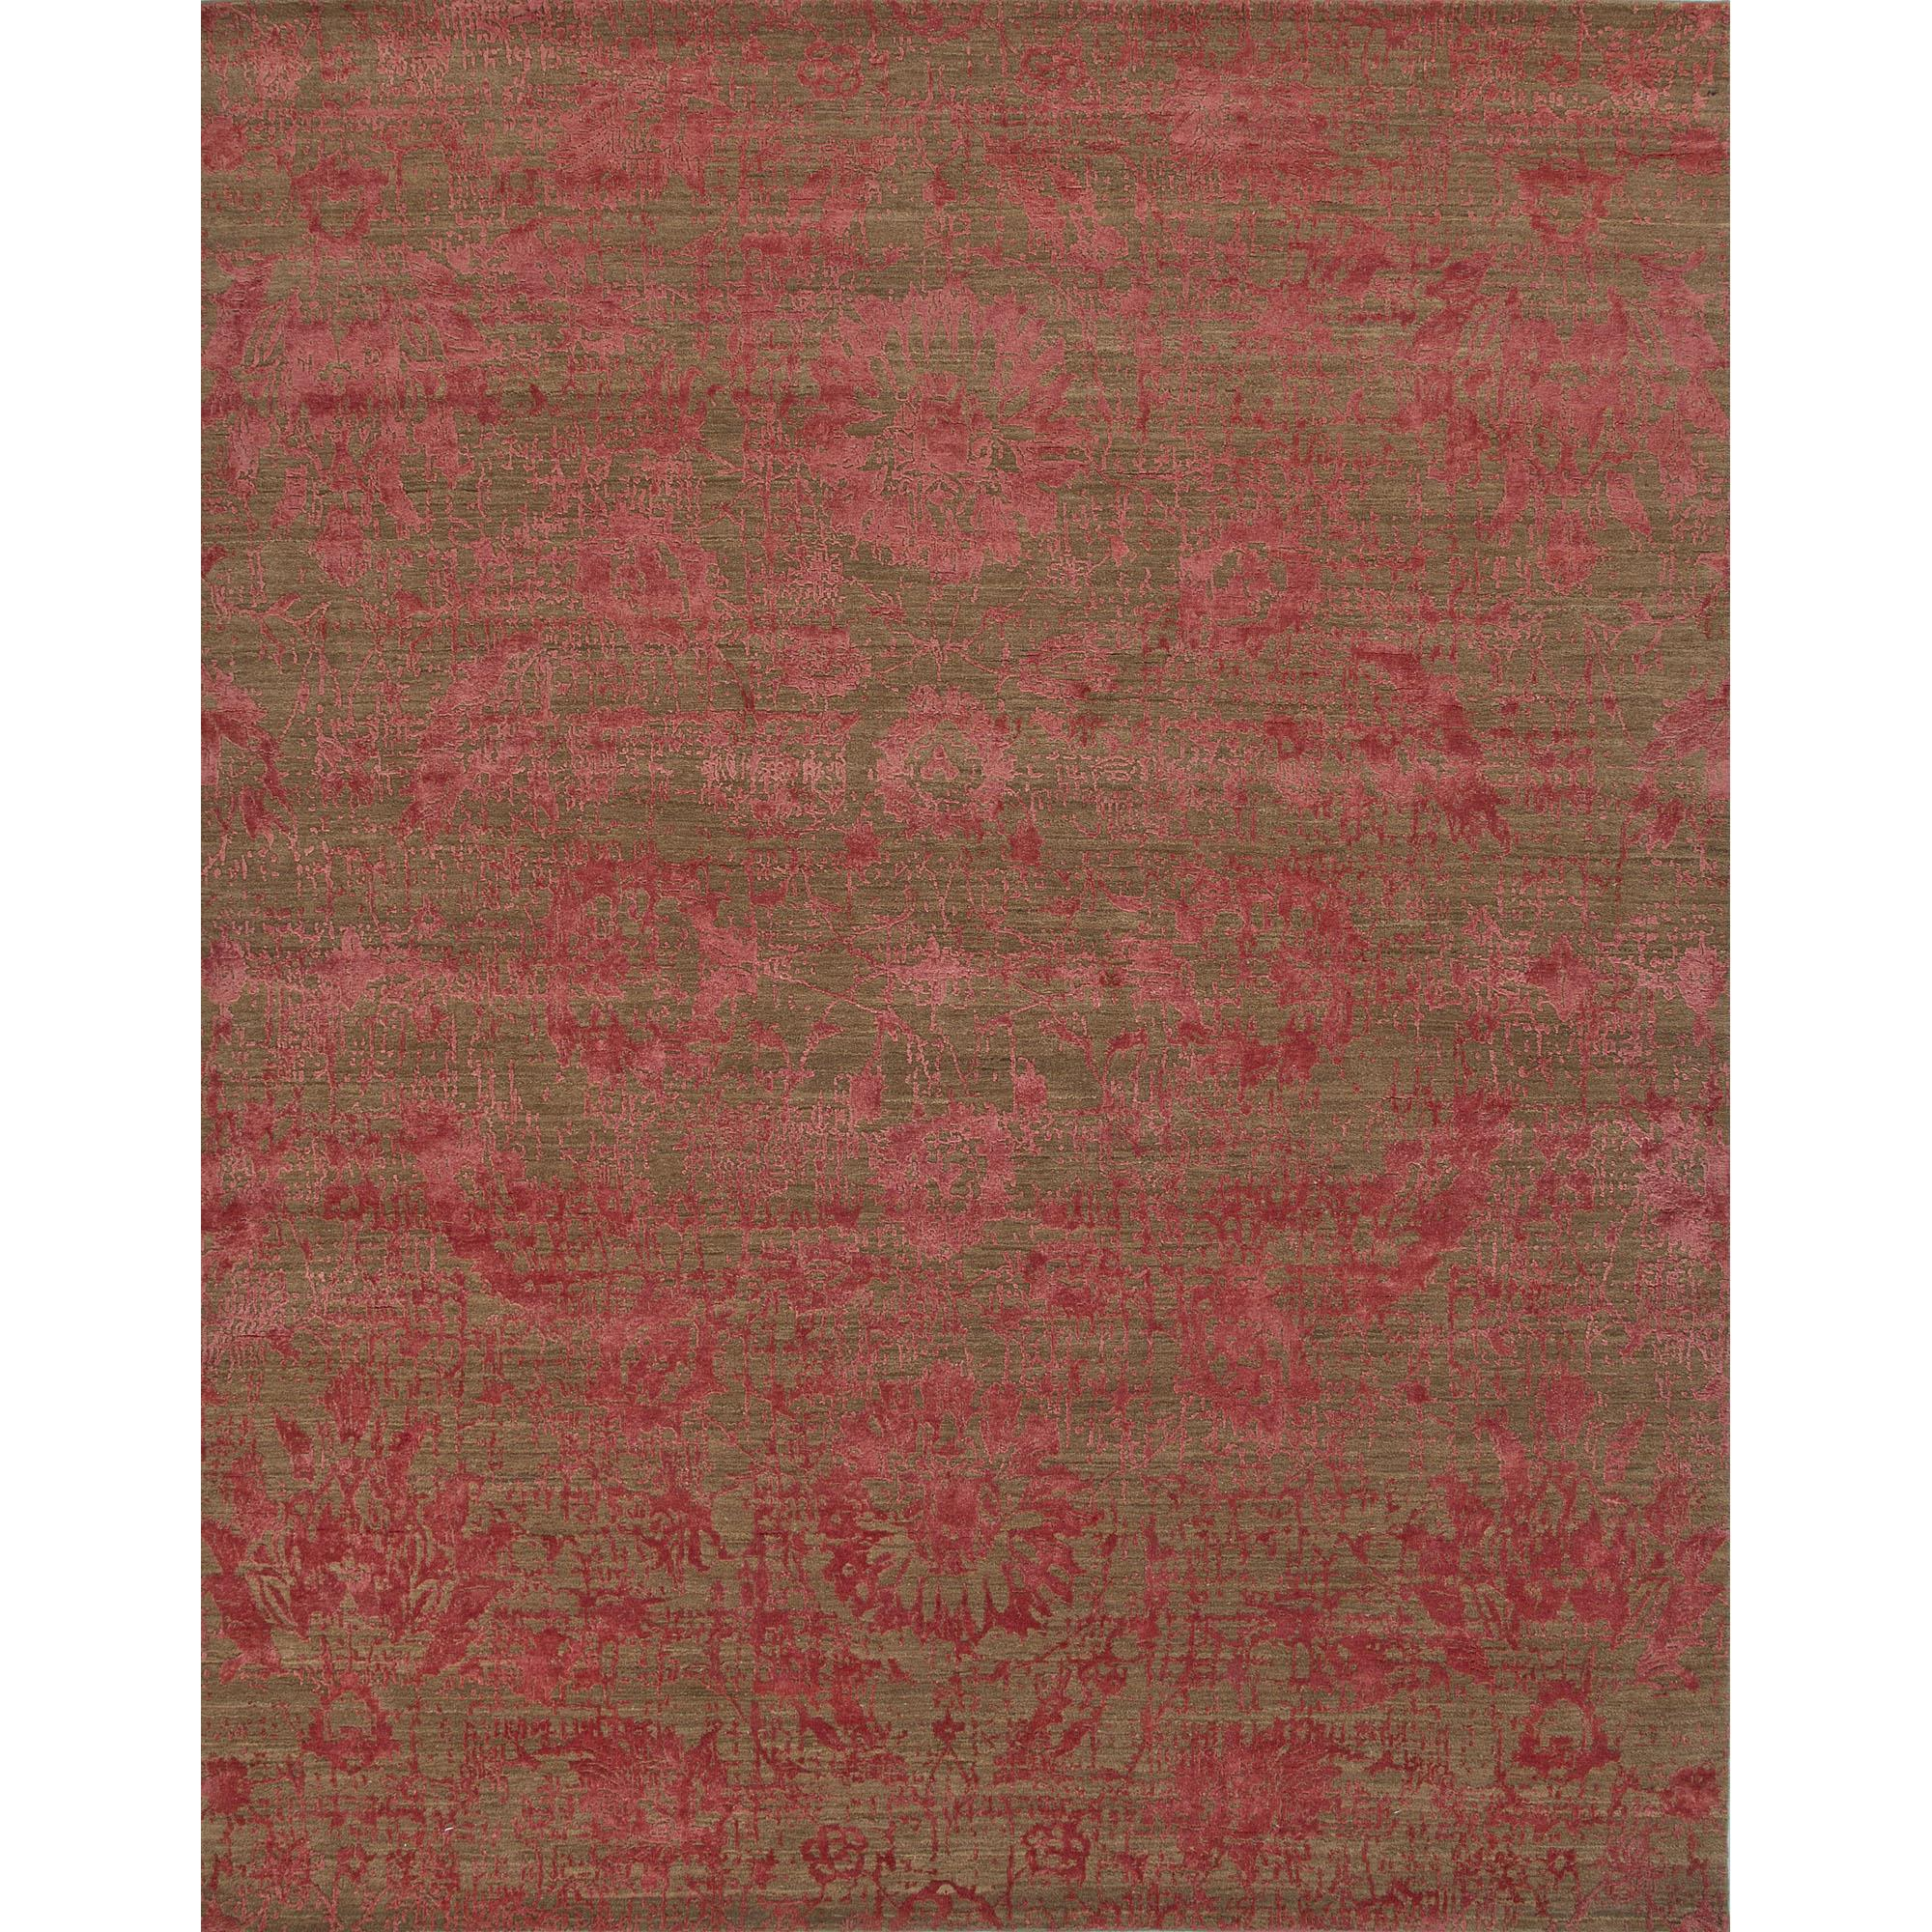 JAIPUR Rugs Chaos Theory By Kavi 5.6 x 8 Rug - Item Number: RUG119222